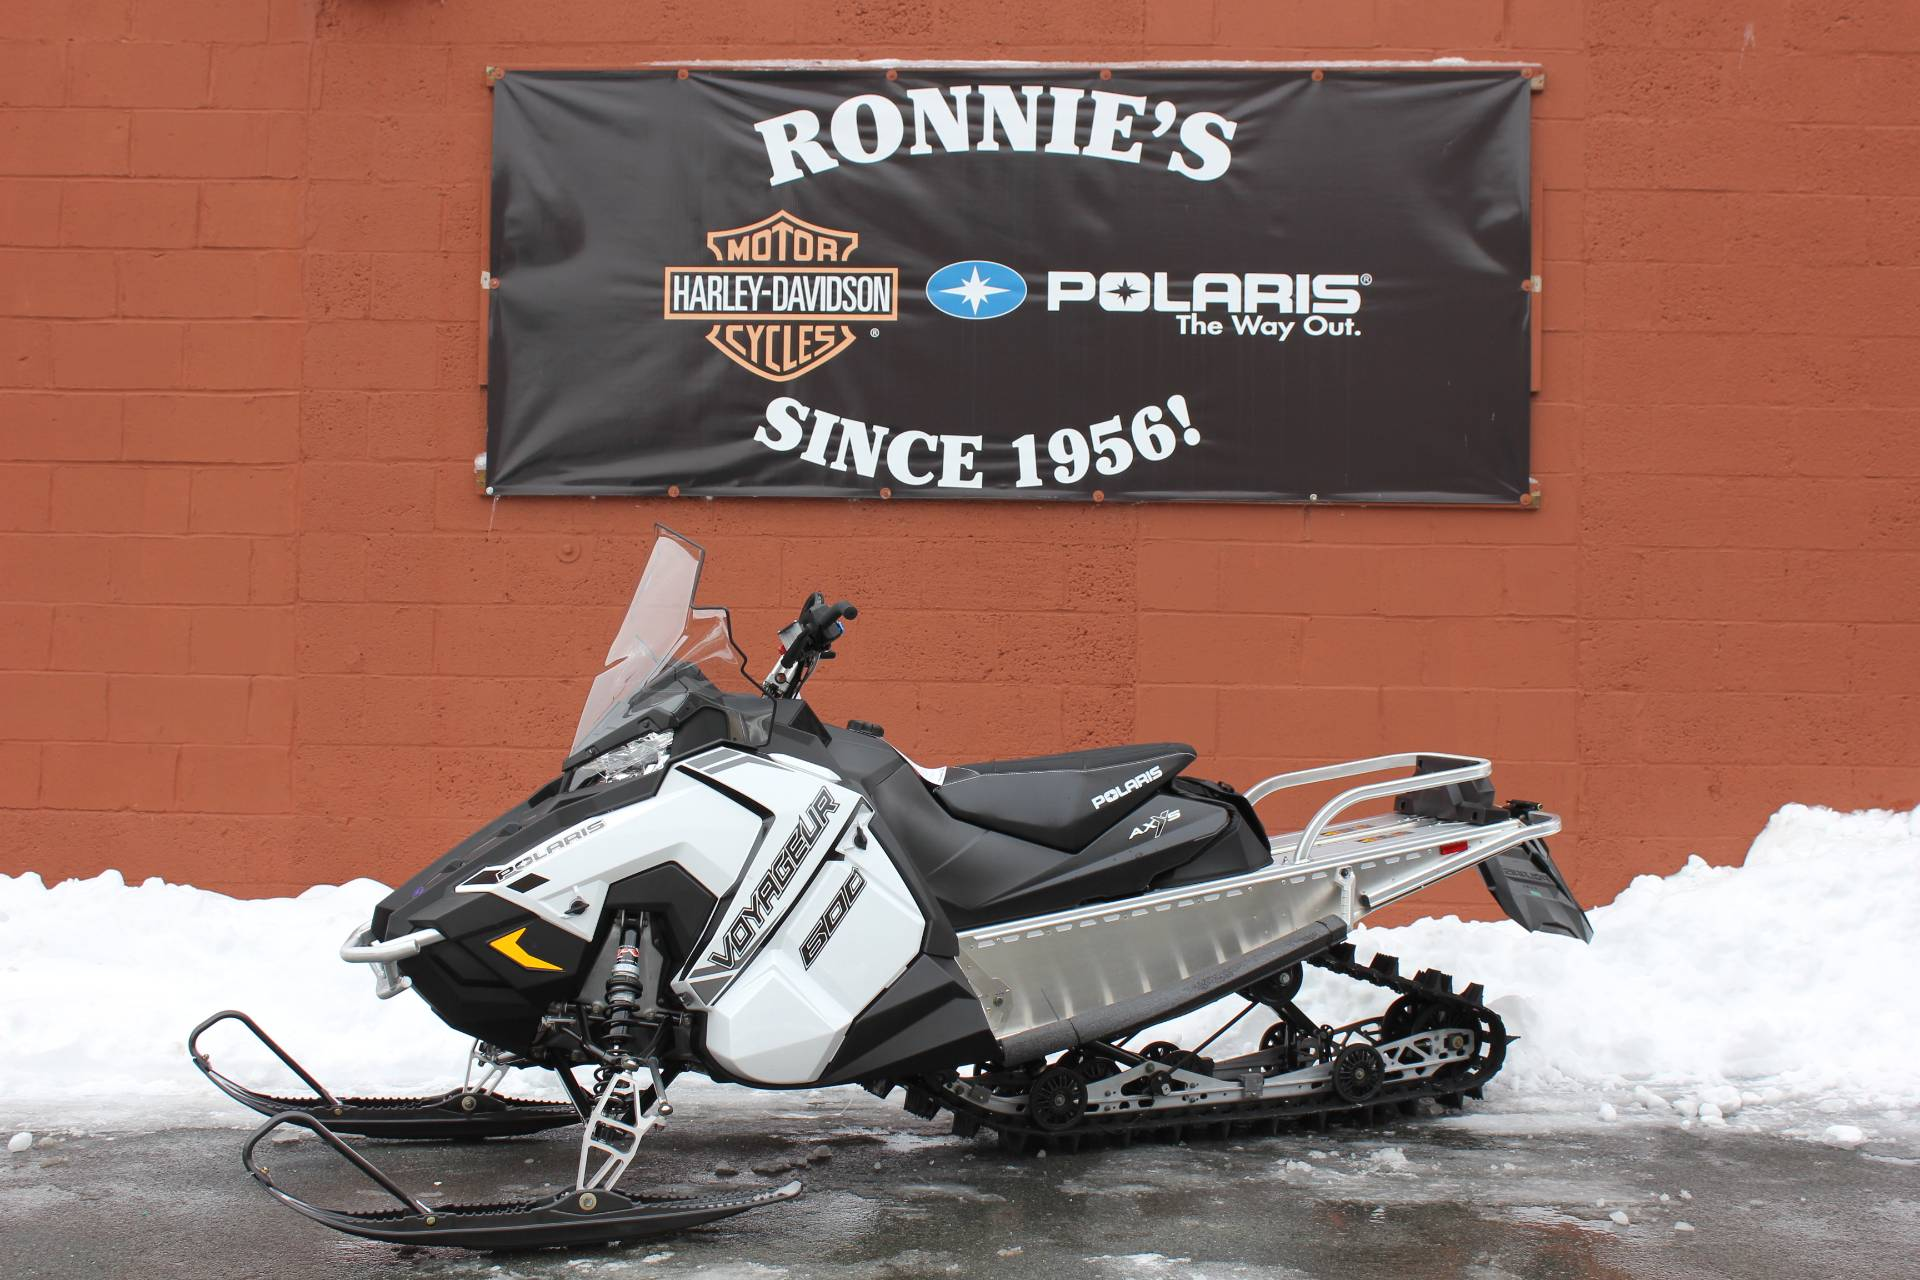 2020 Polaris 600 Voyageur 144 ES in Pittsfield, Massachusetts - Photo 1